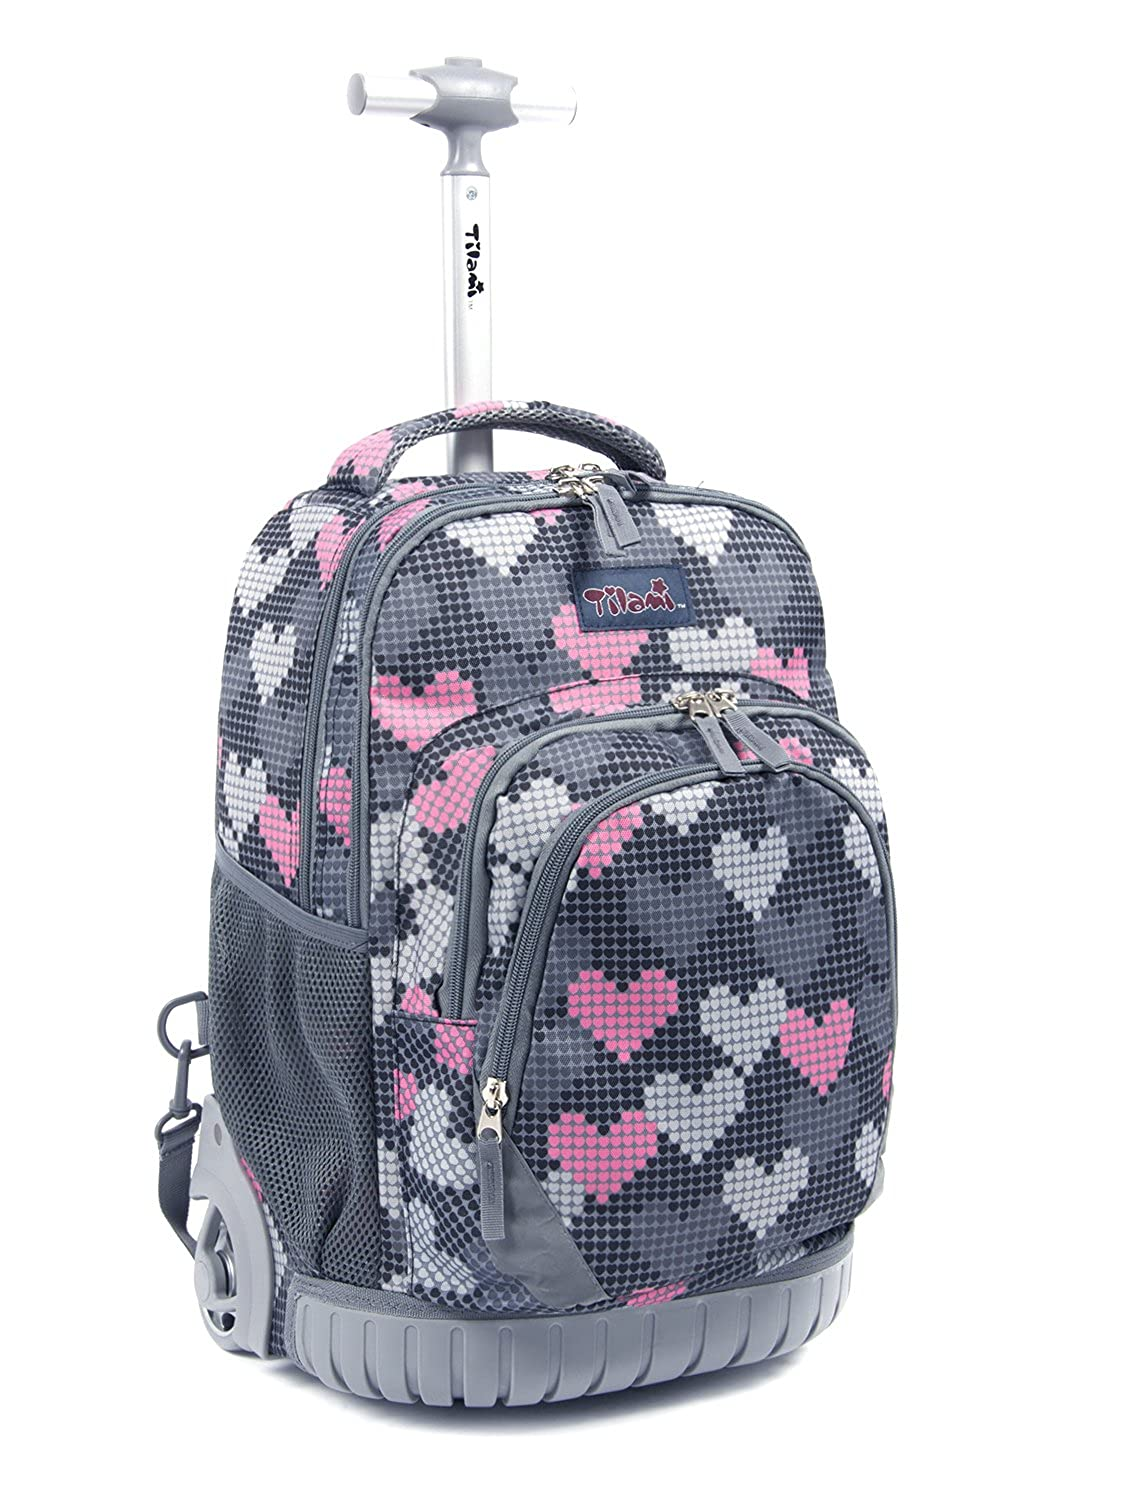 Kids Rolling Backpacks For School Click Backpacks